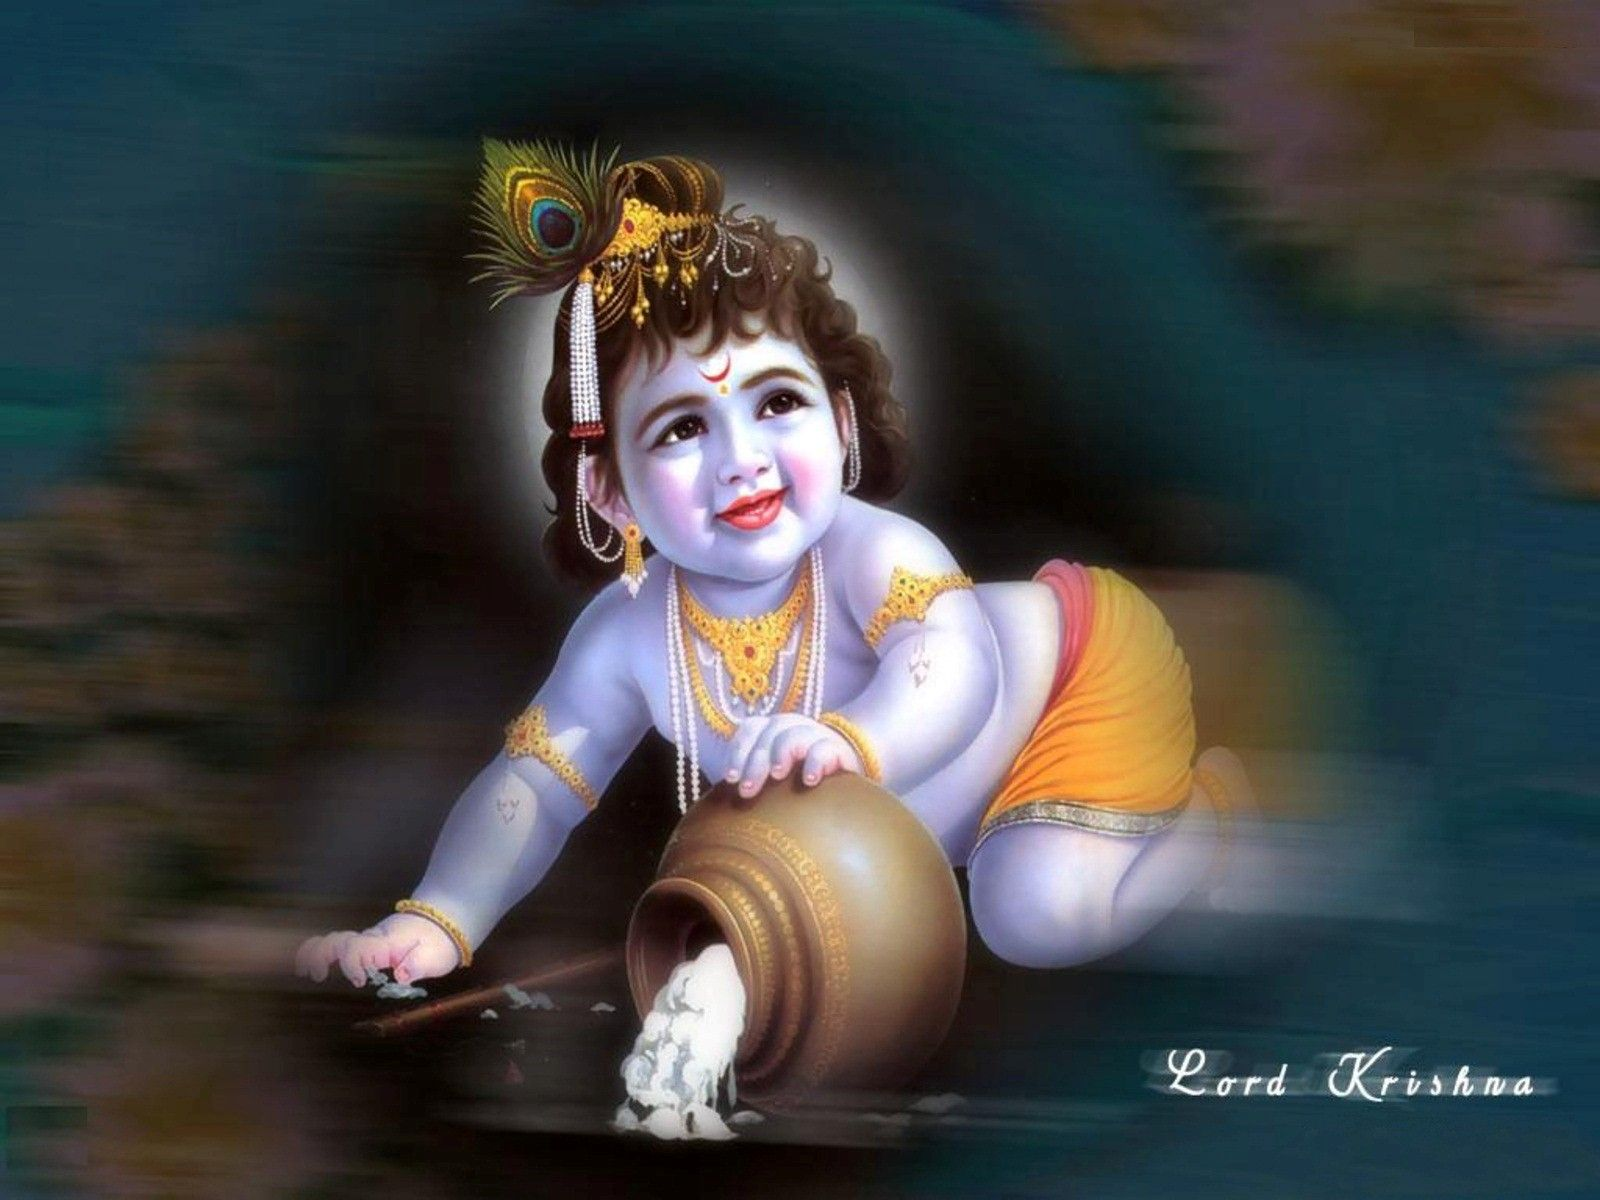 Lord Krishna High Resolution Wallpapers Images Download Lord Krishna Wallpapers Lord Krishna Images Lord Krishna